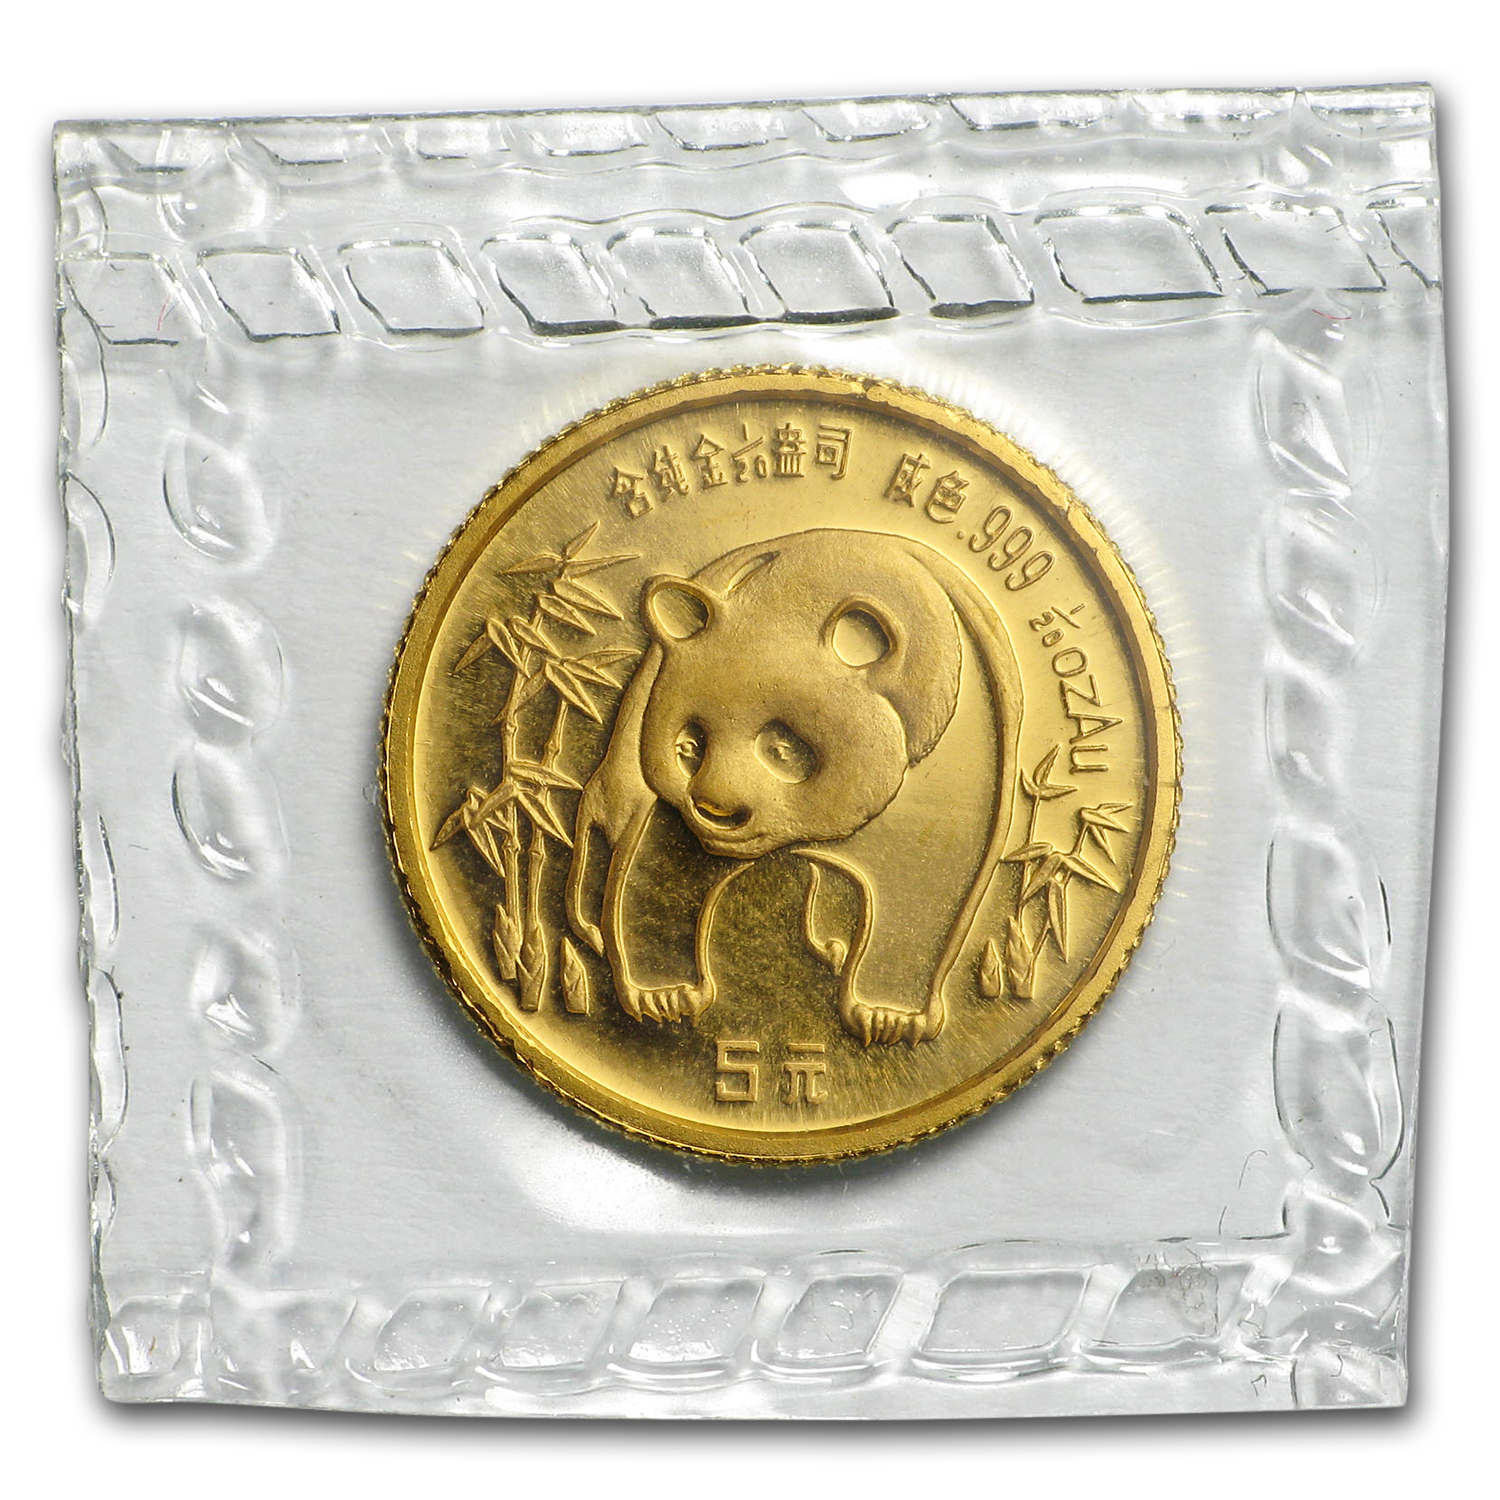 1986 1/20 oz Gold Chinese Panda BU (Sealed)